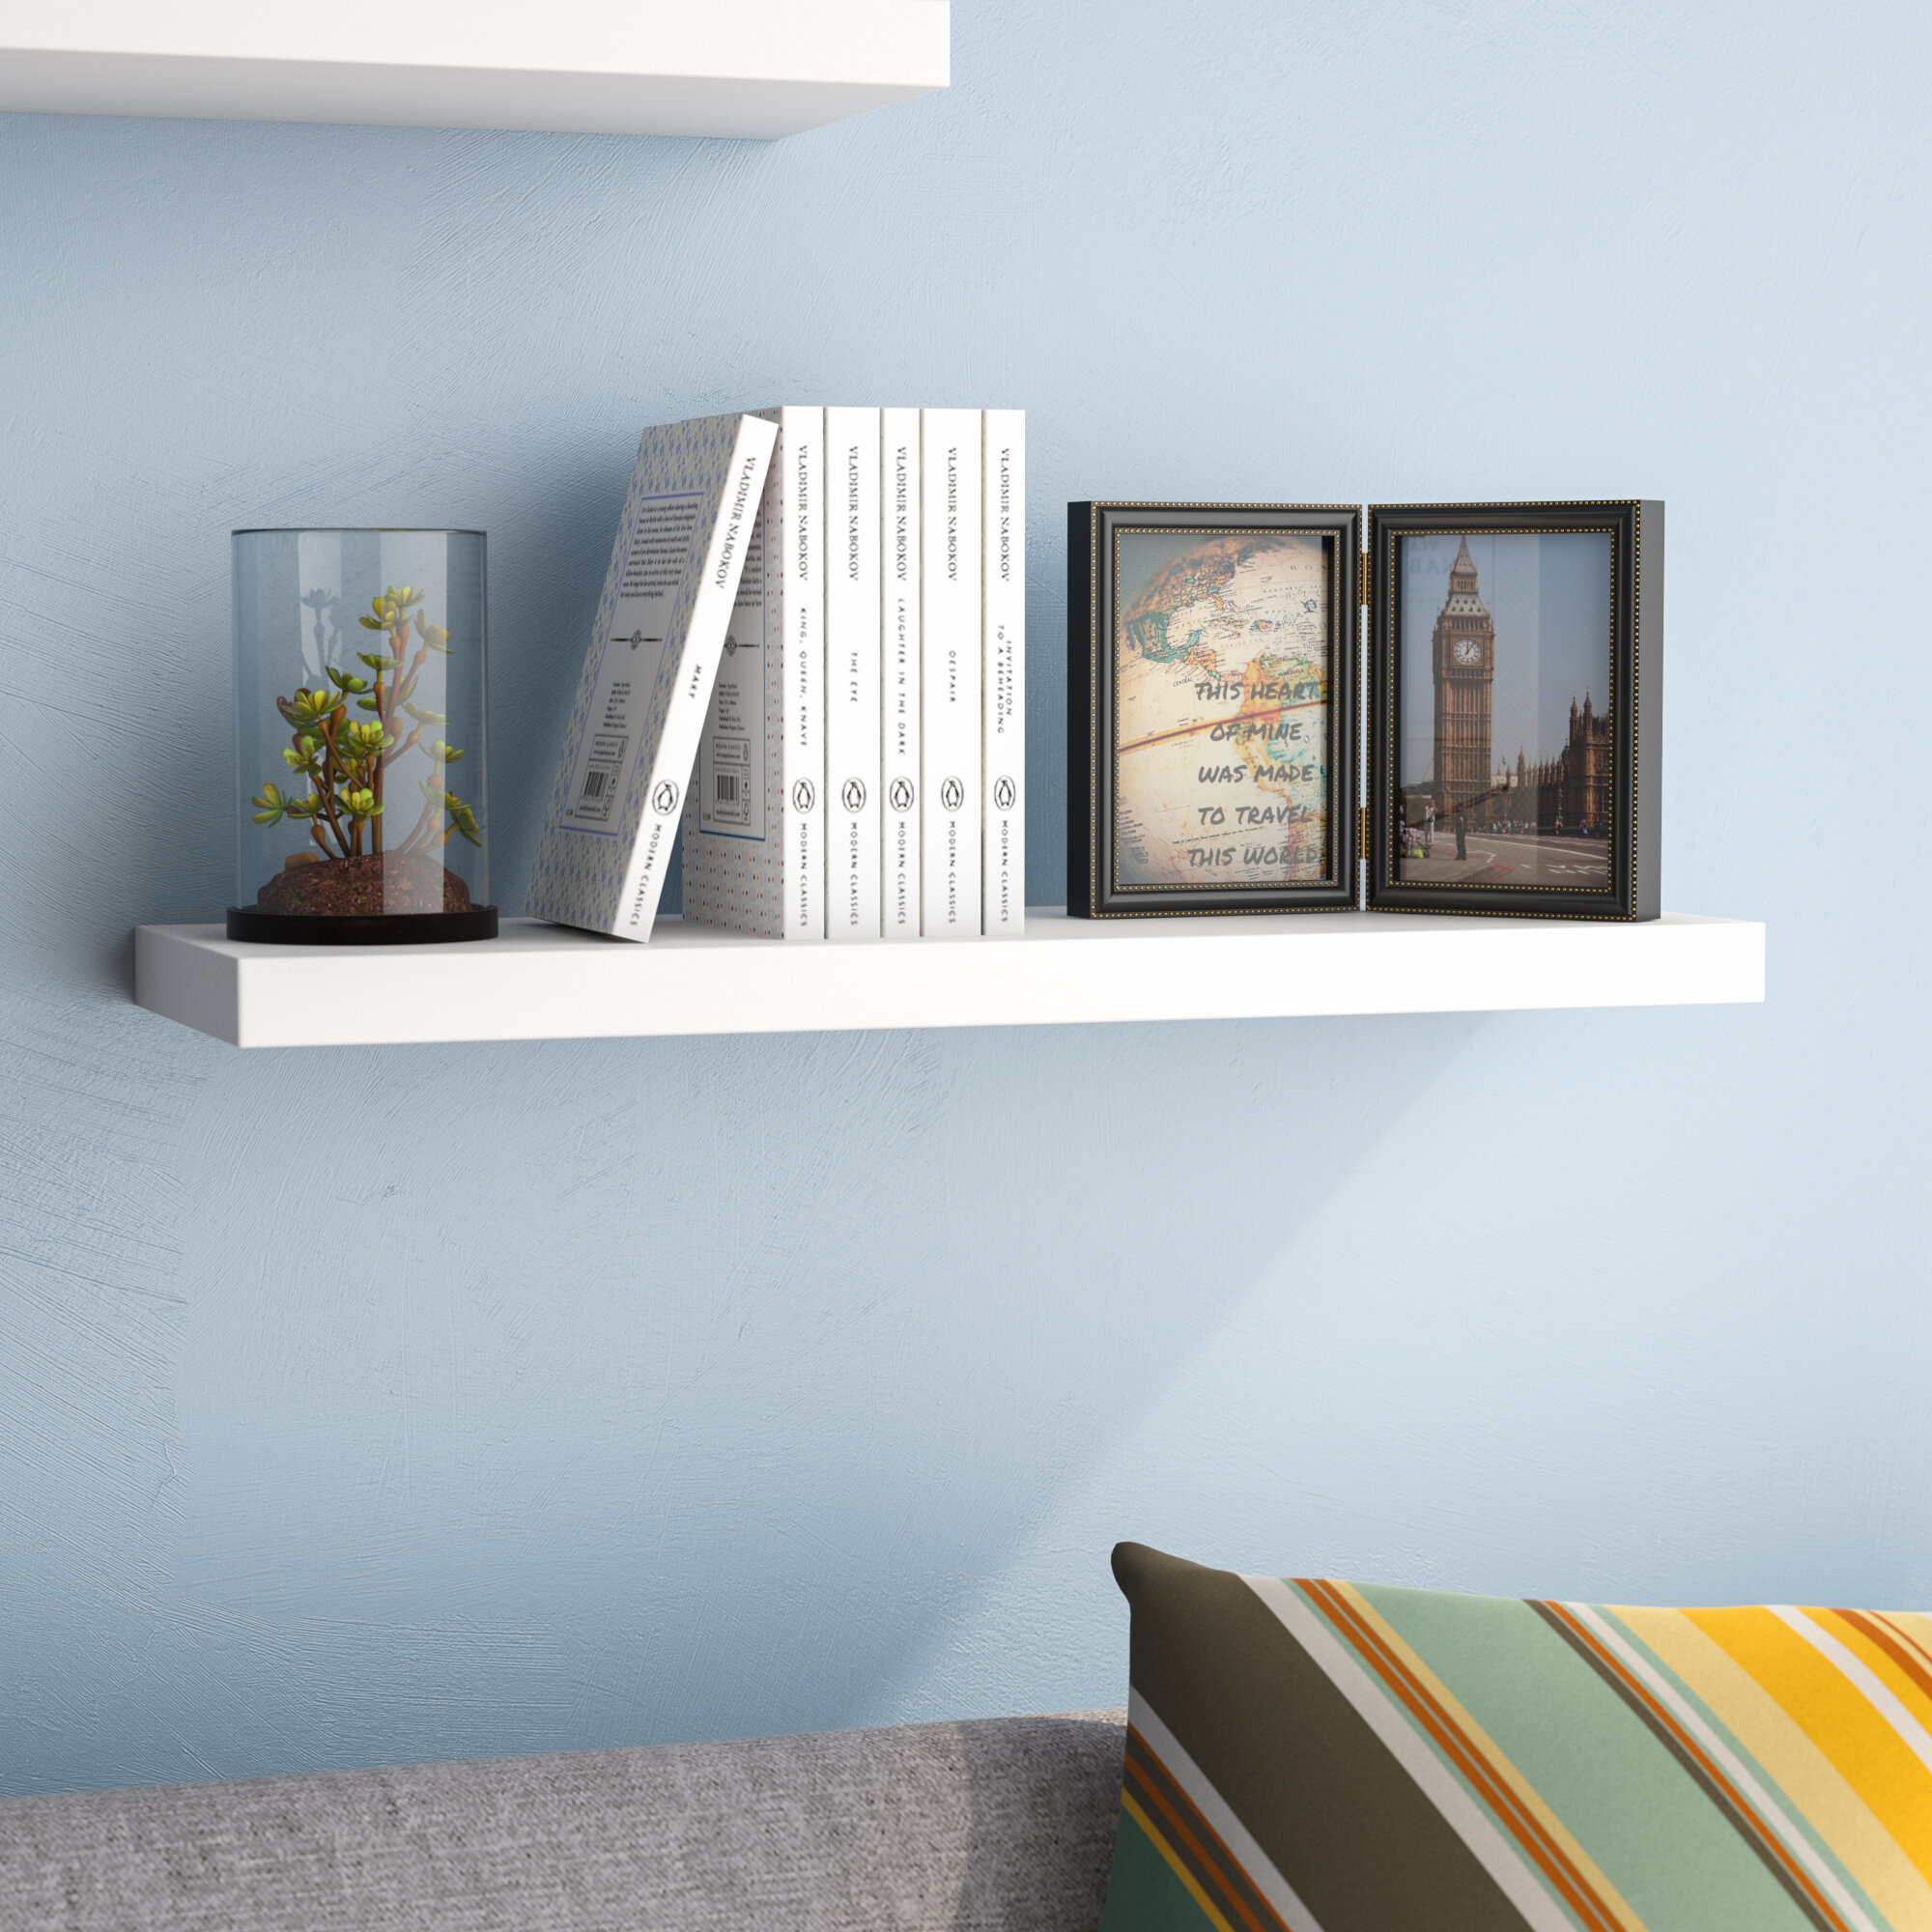 Ebern Designs Board Line Floating Wall Shelf U0026 Reviews | Wayfair